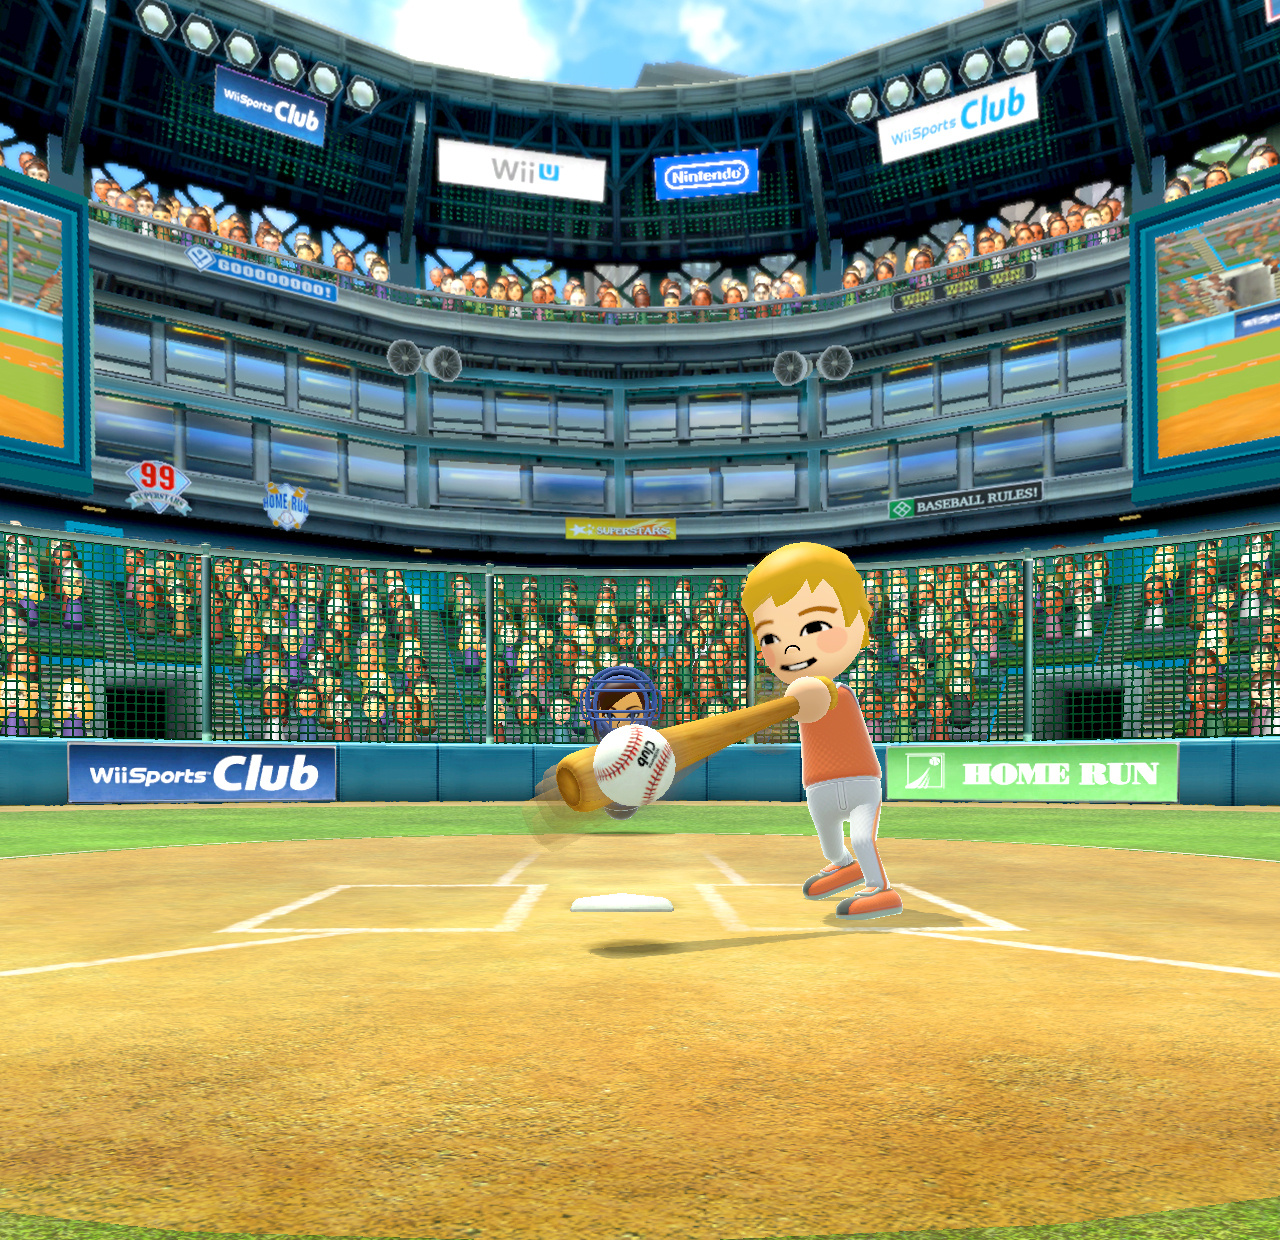 Wii Sports Club Retail Version Hits North America On 25th